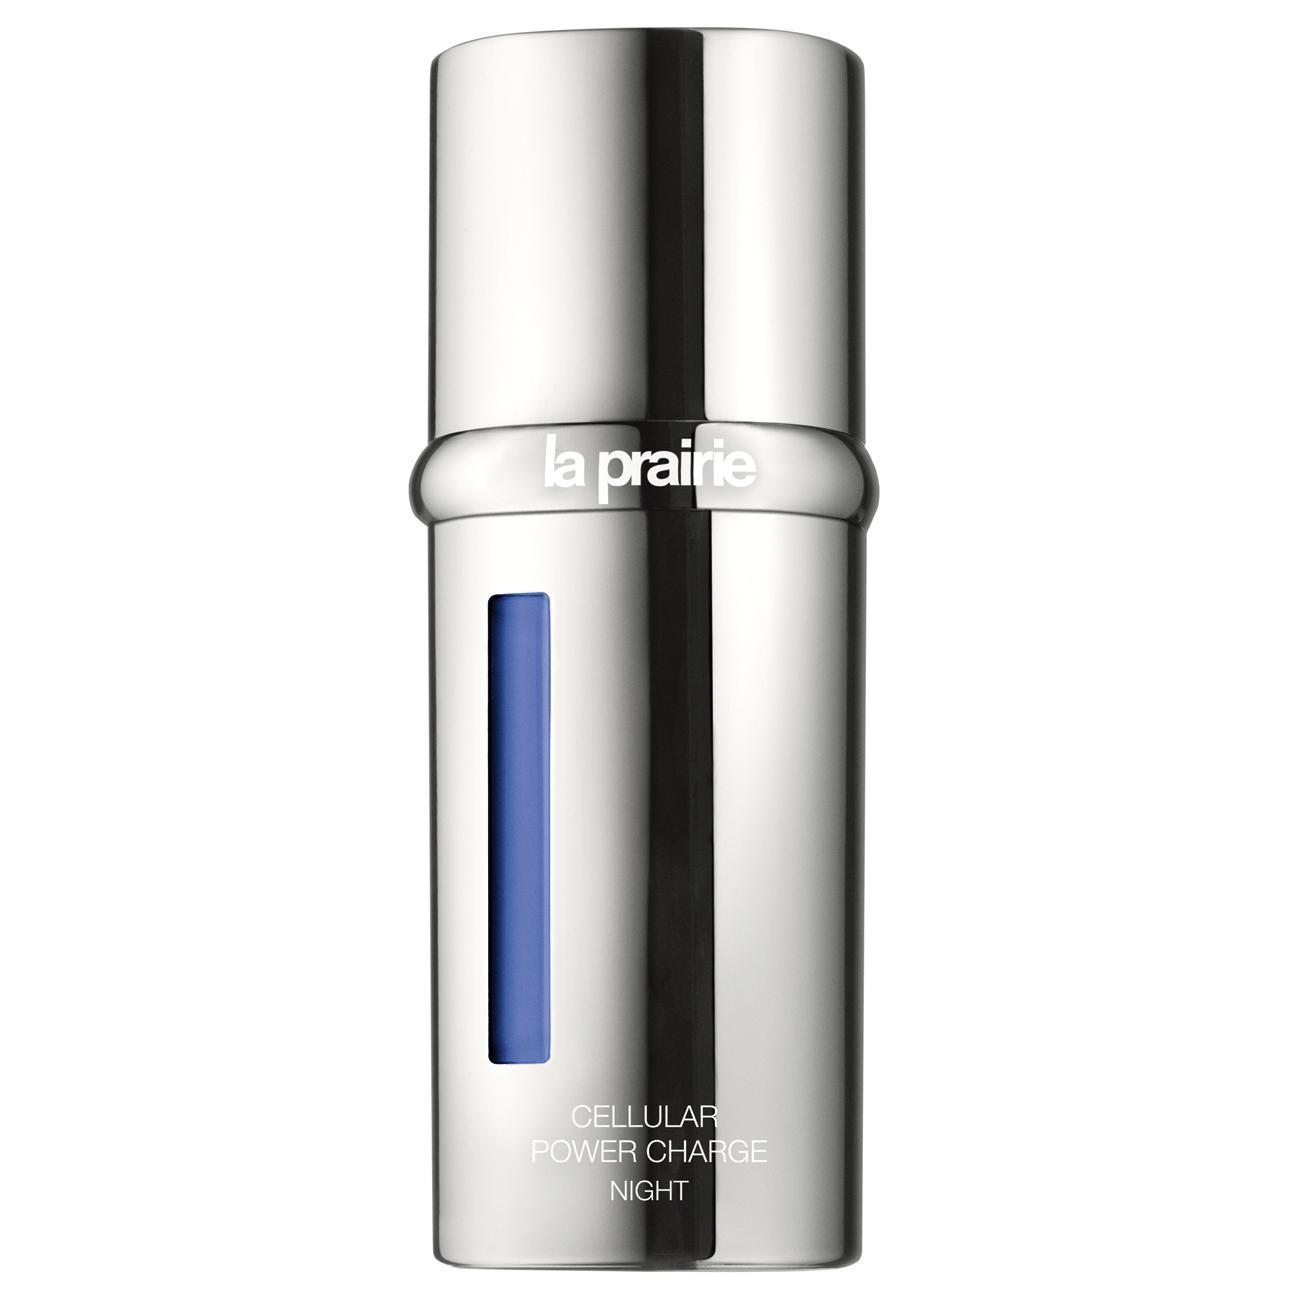 La Prairie Cellular Power Charge Night 40 ml